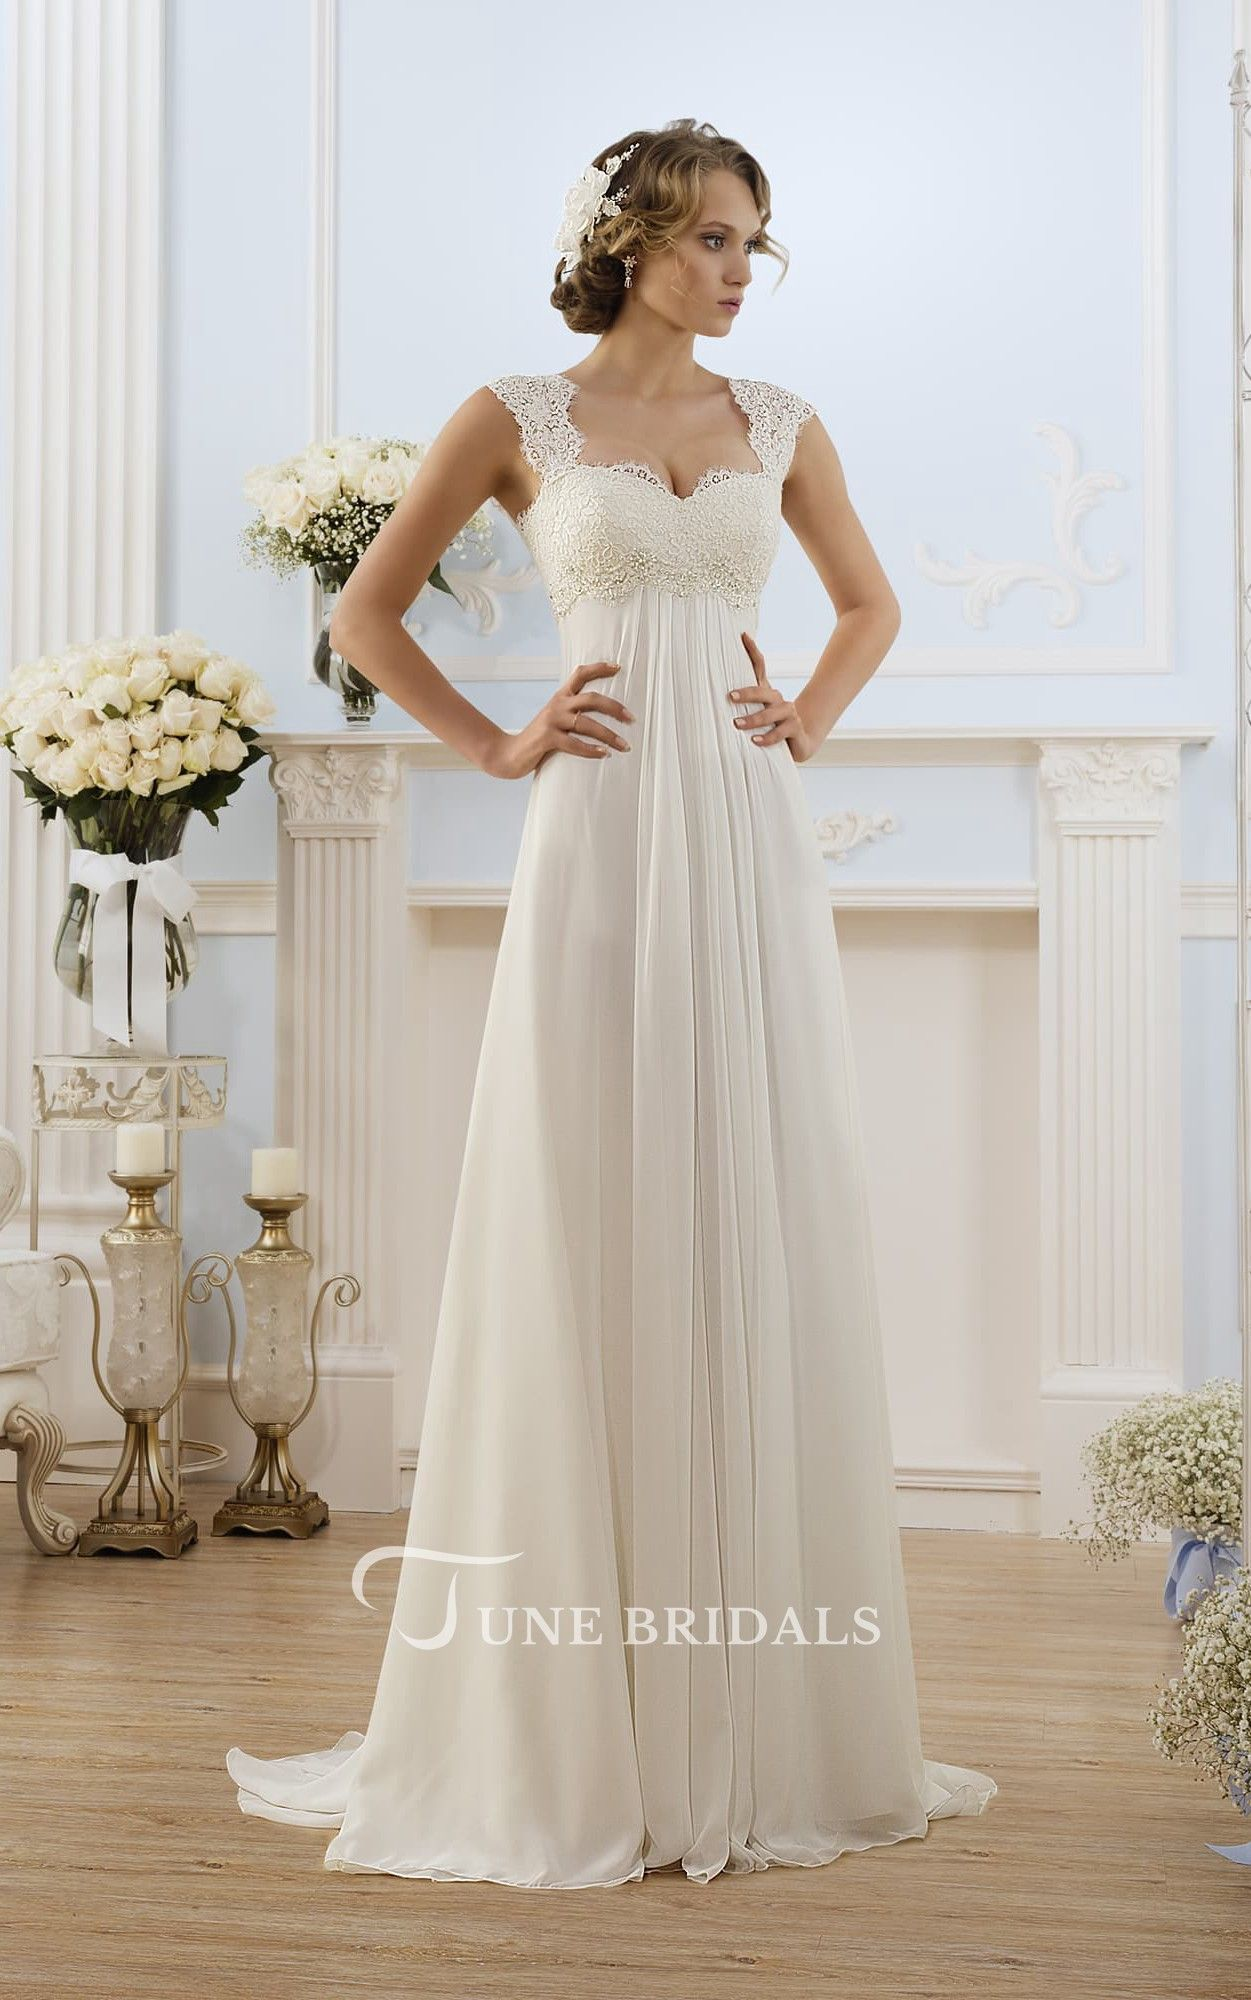 d52e75139b8a A-Line Long Cap-Sleeve Keyhole Chiffon Dress With Lace - June Bridals  Country